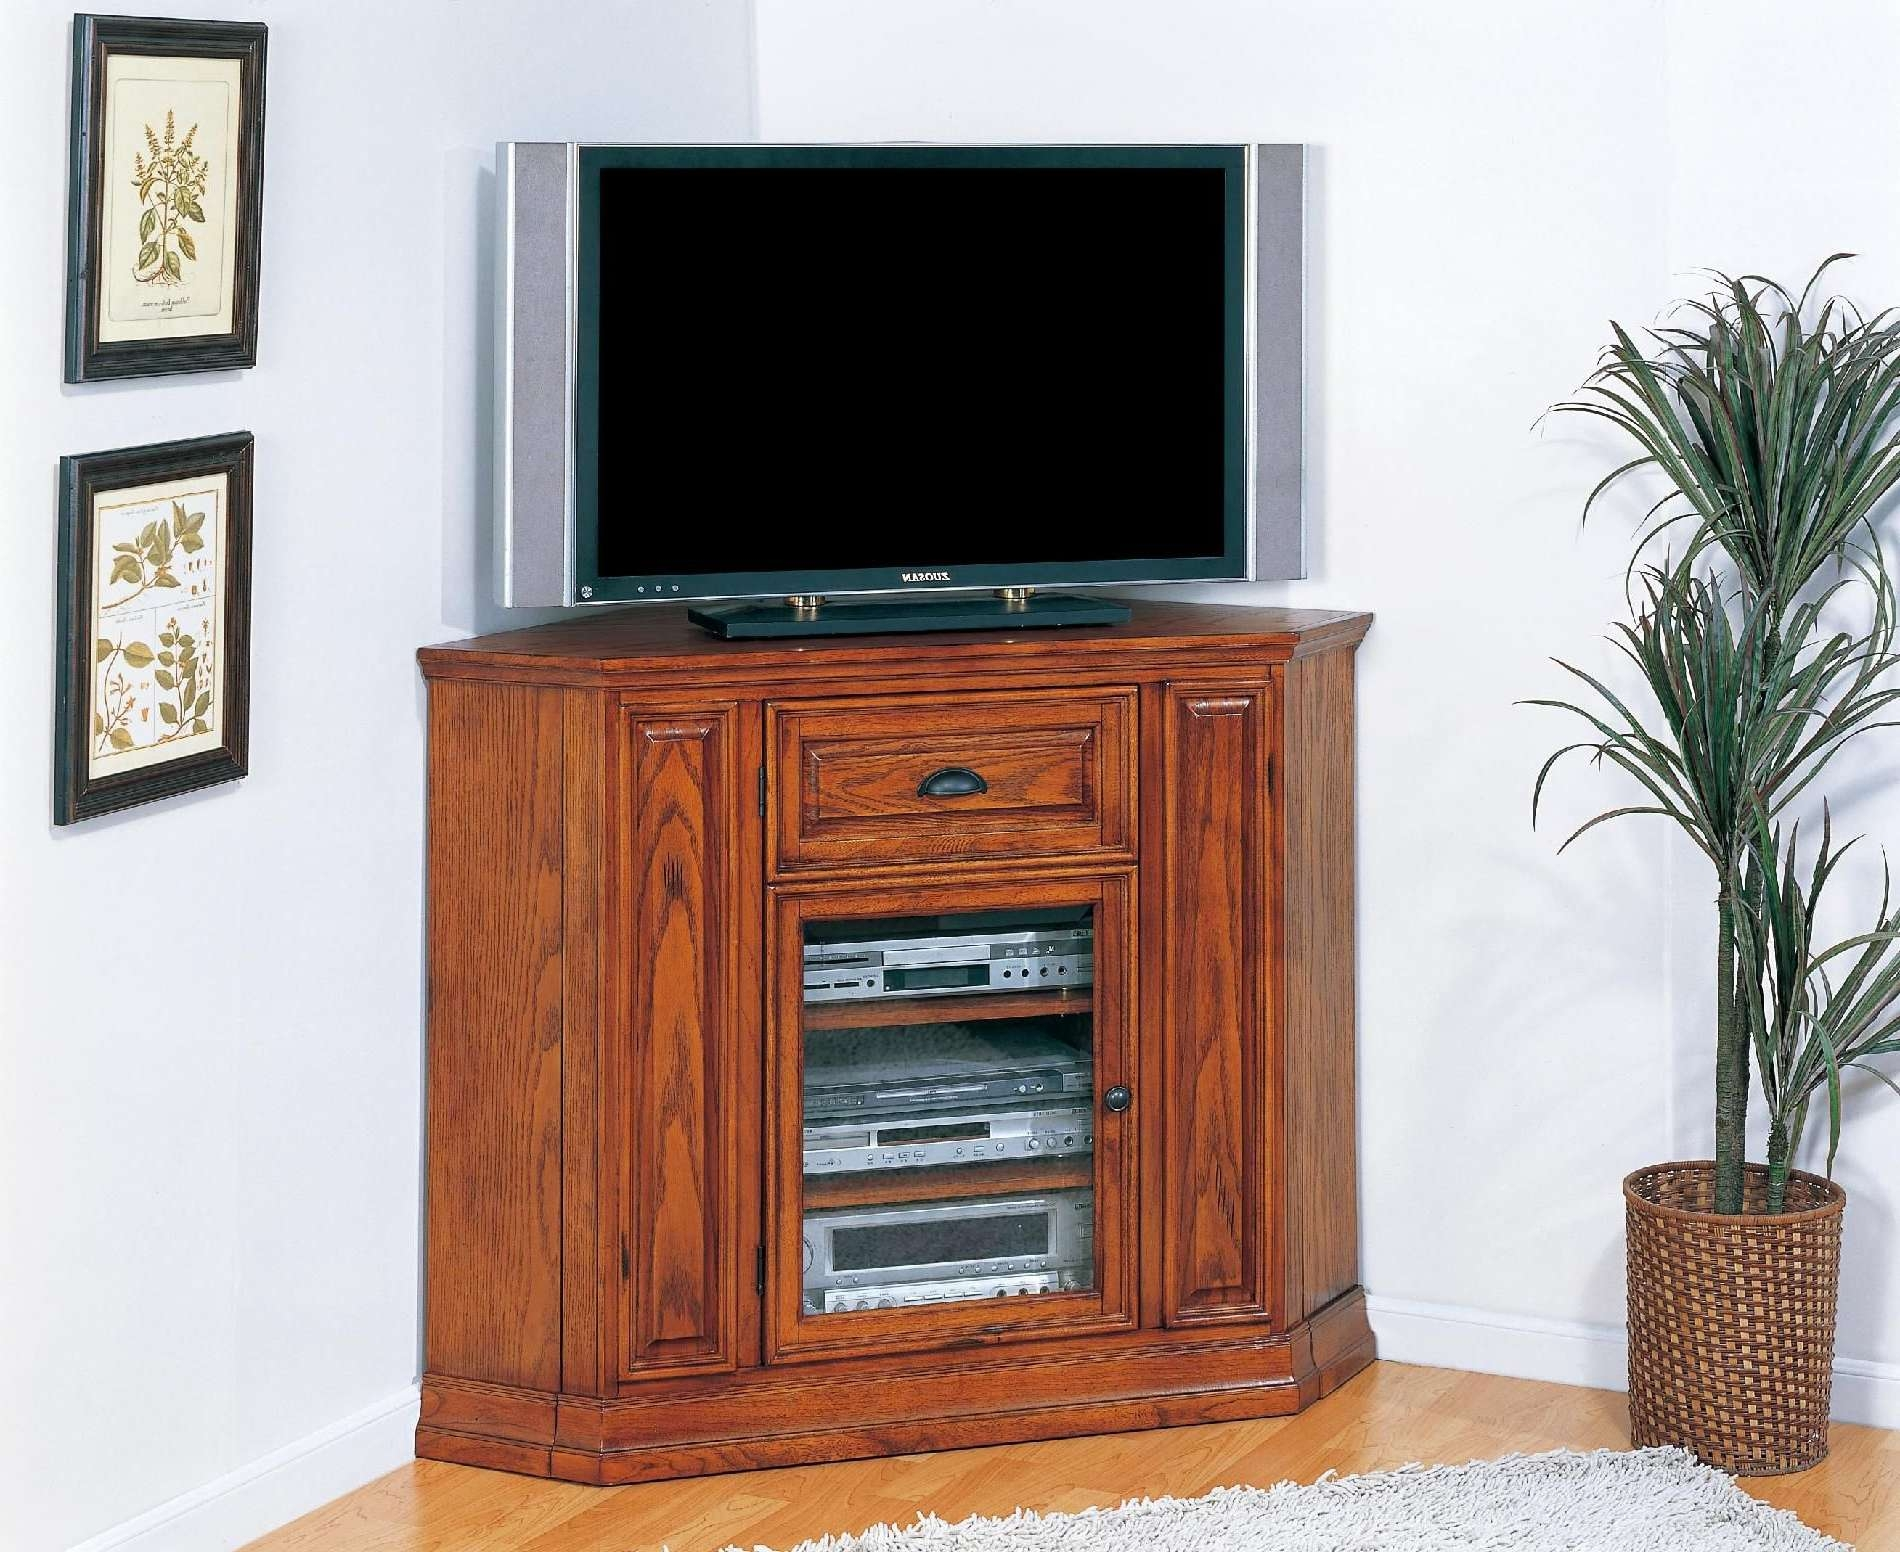 Tall Corner Tv Cabinets For Flat Screens • Corner Cabinets With Regard To Oak Tv Cabinets For Flat Screens (View 10 of 20)